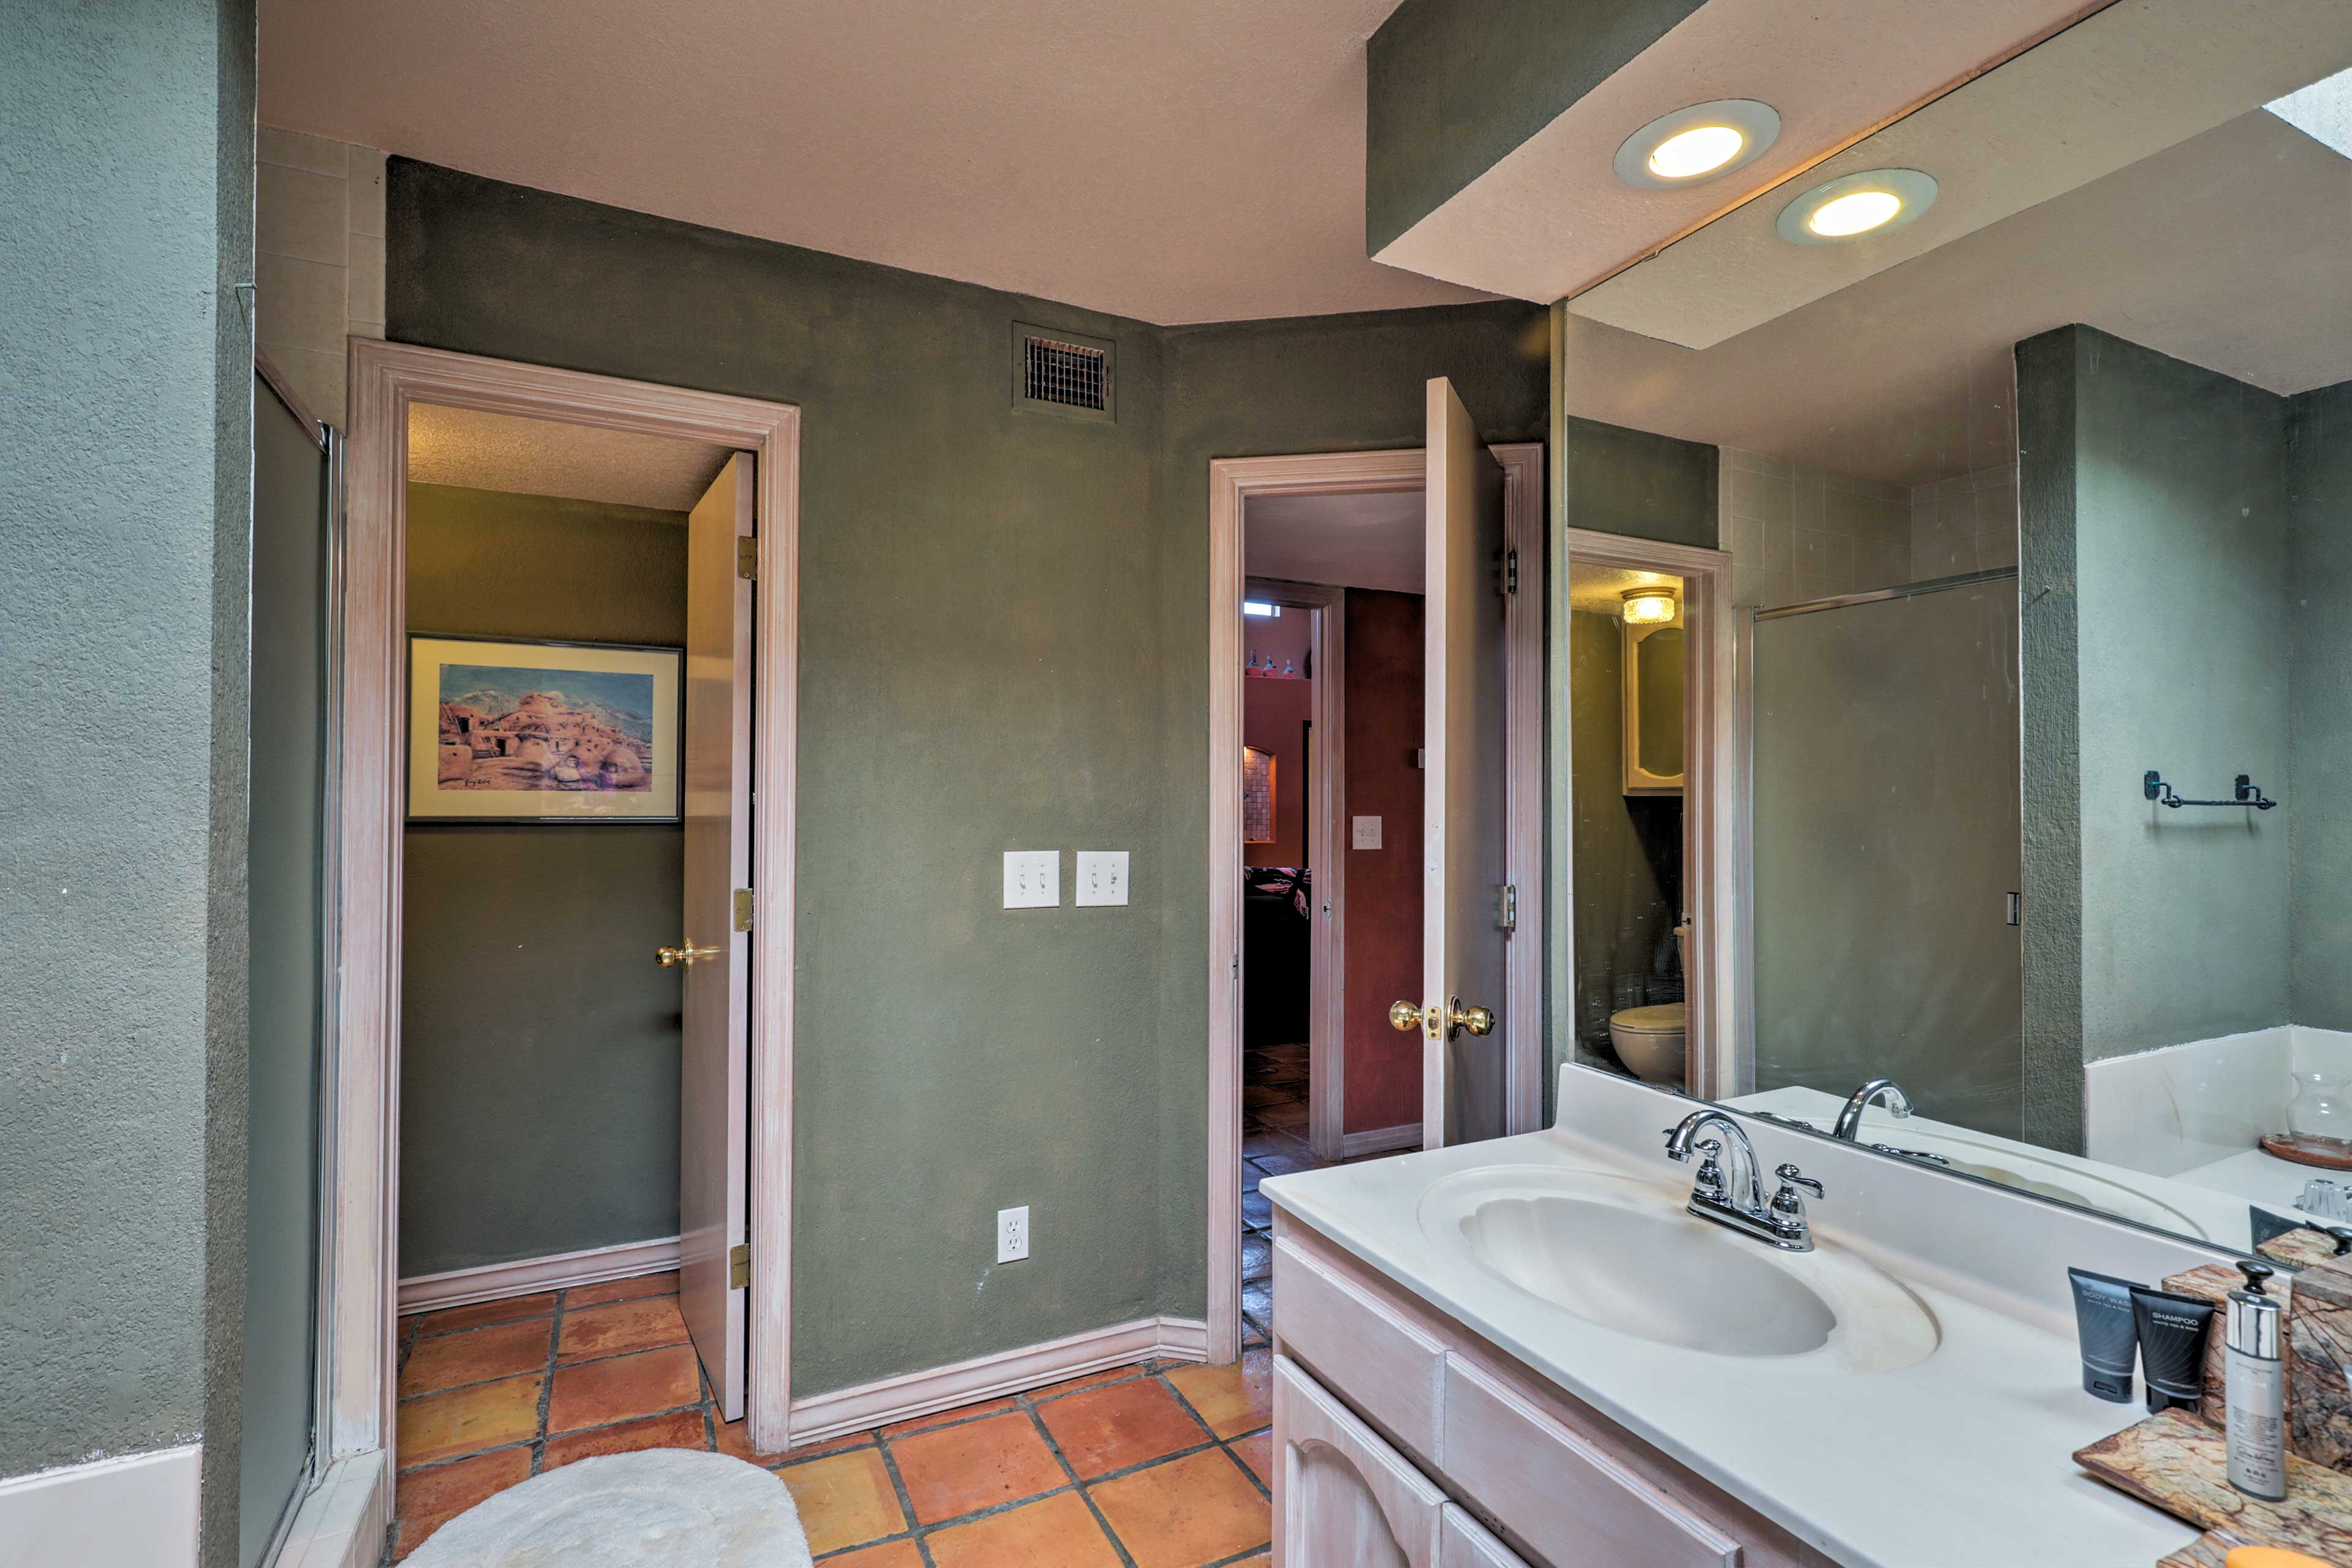 The bathroom also has a jetted tub and walk-in shower!